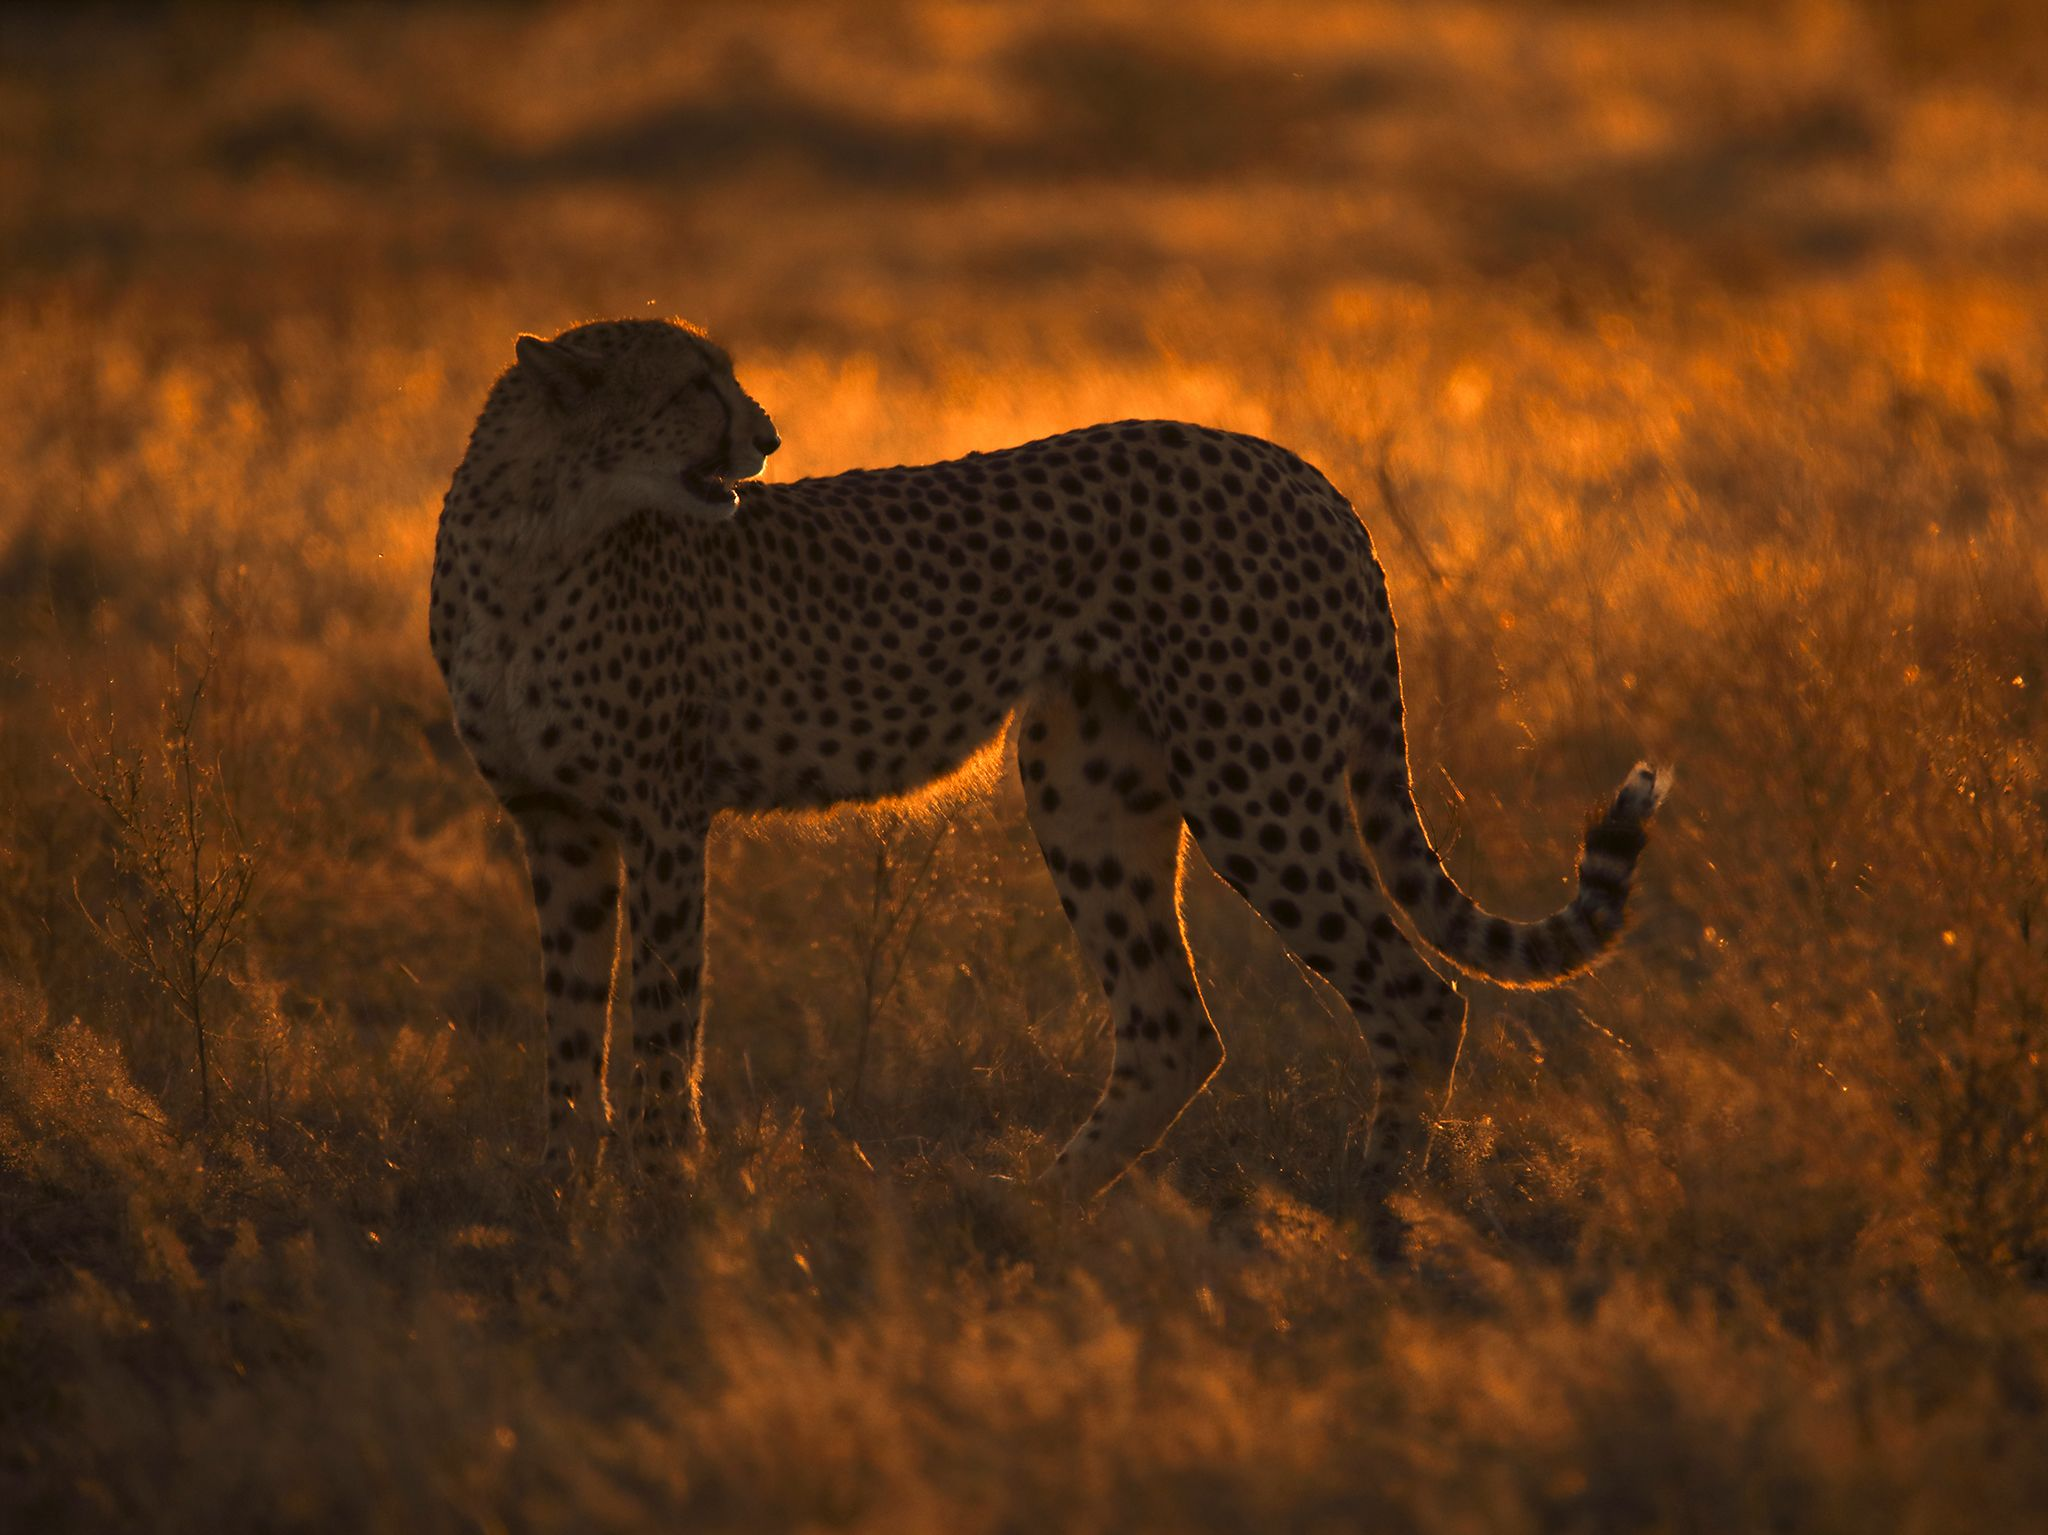 Okavango Delta, Botswana:  Mother Cheetah, silhouetted in the early morning sunrise, calls out... [Photo of the day - June 2019]